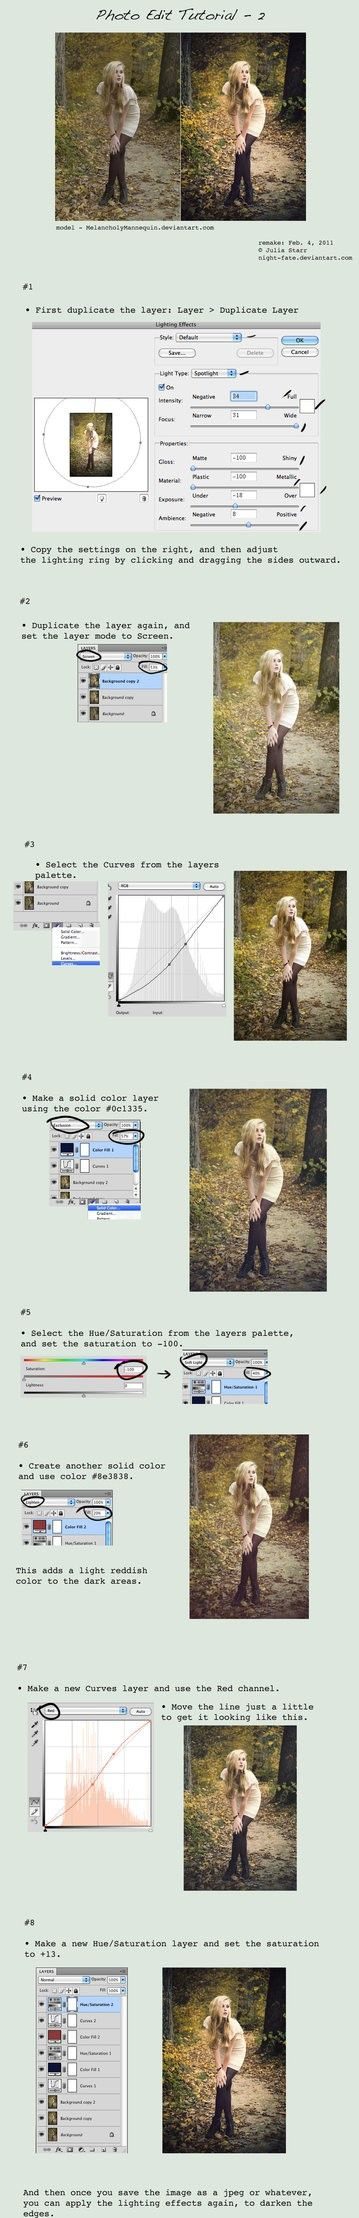 Editing tutorial. - Click image to find more Photography Pinterest pinsPhoto Tutorial, Photoshop Editing, Editing Tutorials, Photoshop Tutorials, Photos Shops, Ps Tutorials, Photo Editing, Photos Tutorials, Photos Editing